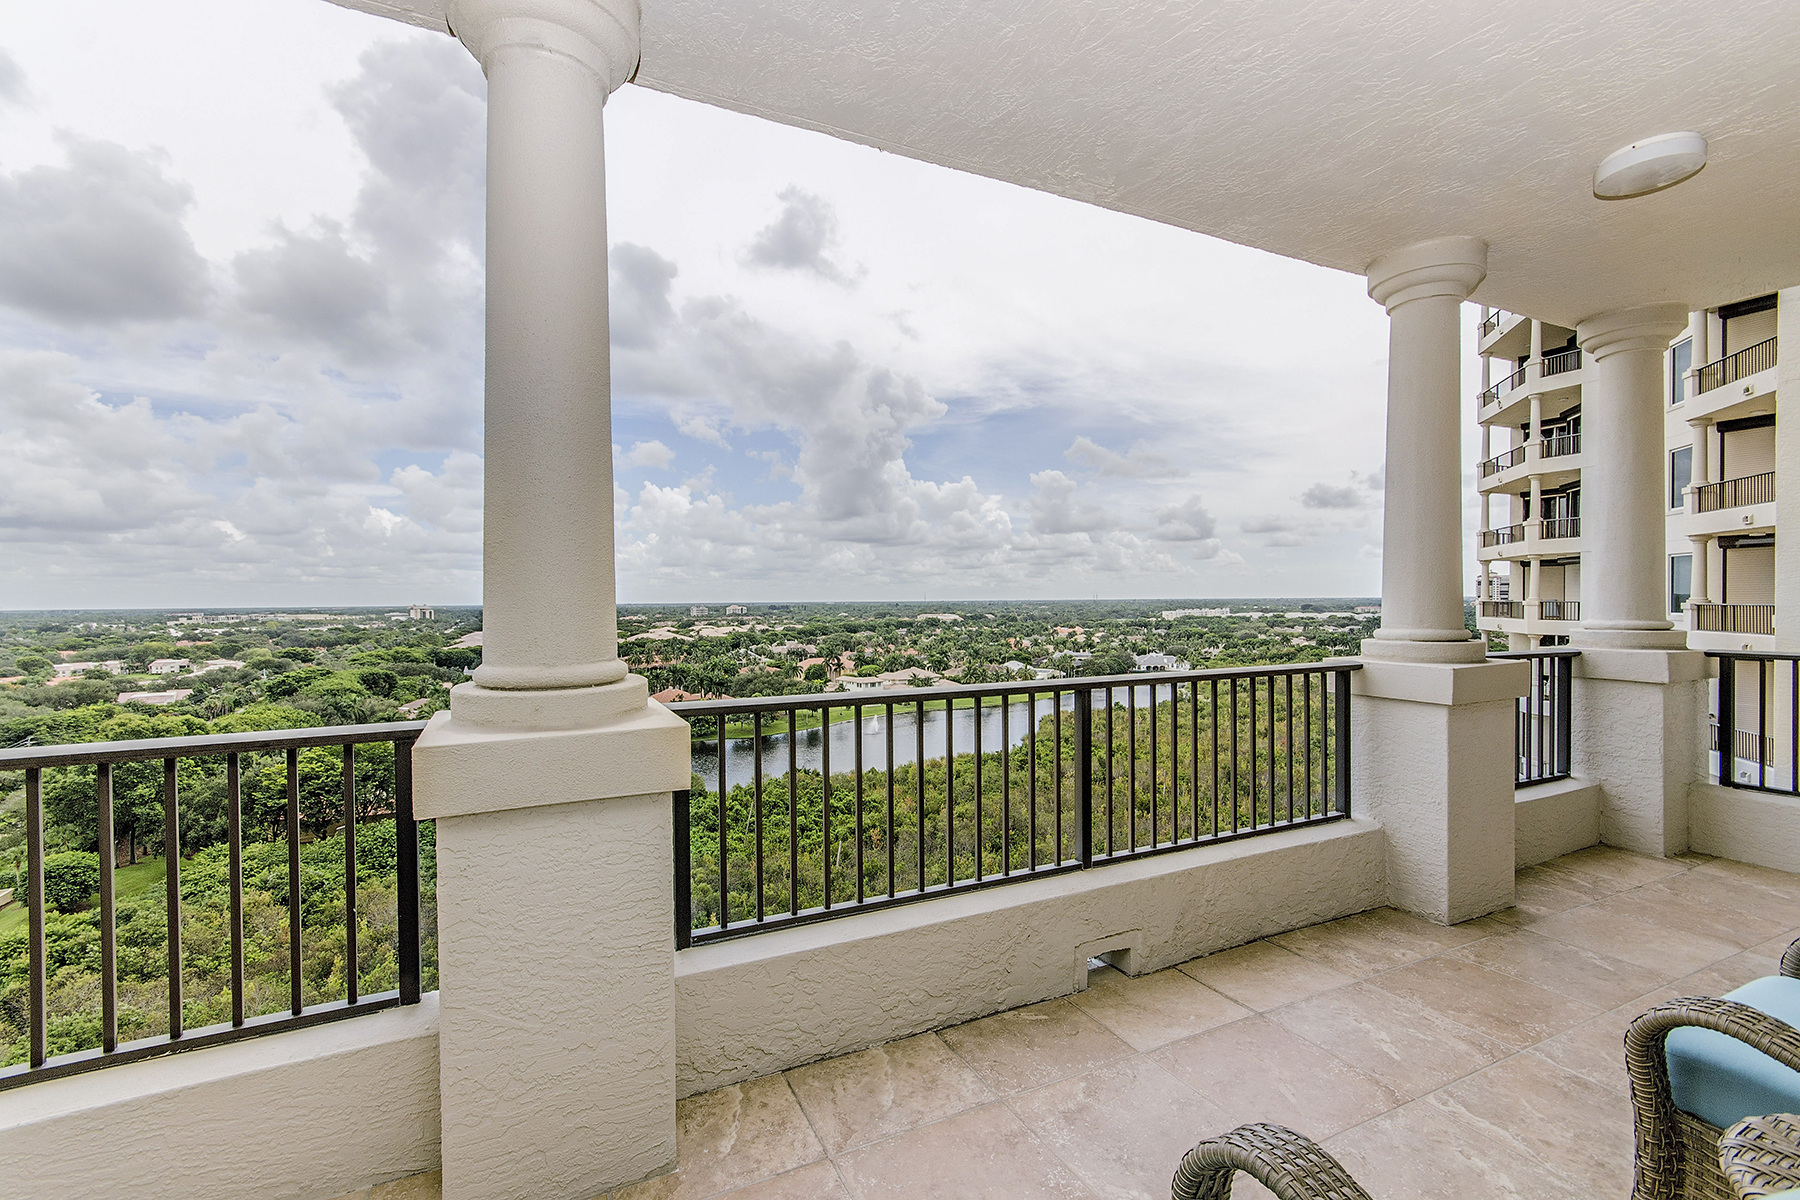 Condominium for Rent at BAY COLONY - TRIESTE 8787 Bay Colony Dr 1404, Naples, Florida 34108 United States